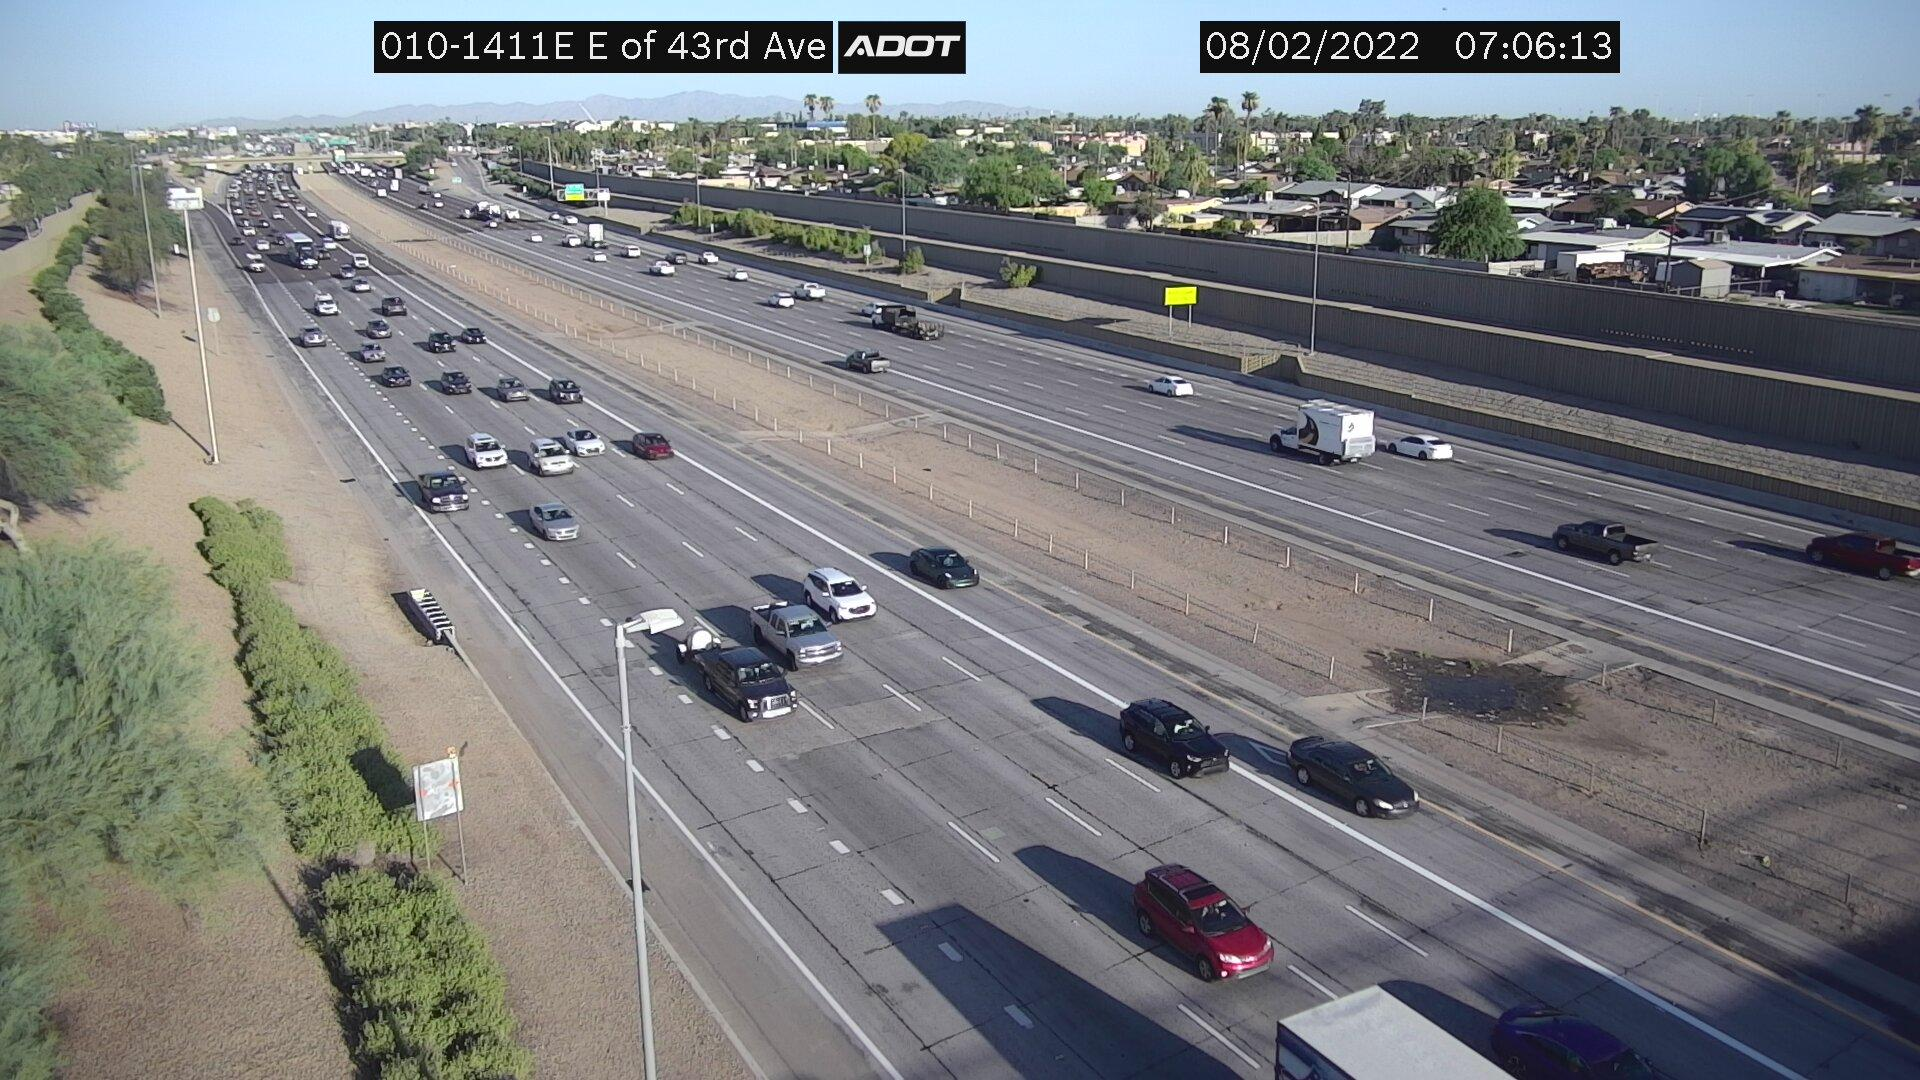 Webcam Catalina Village: I-10W and 43rd Ave